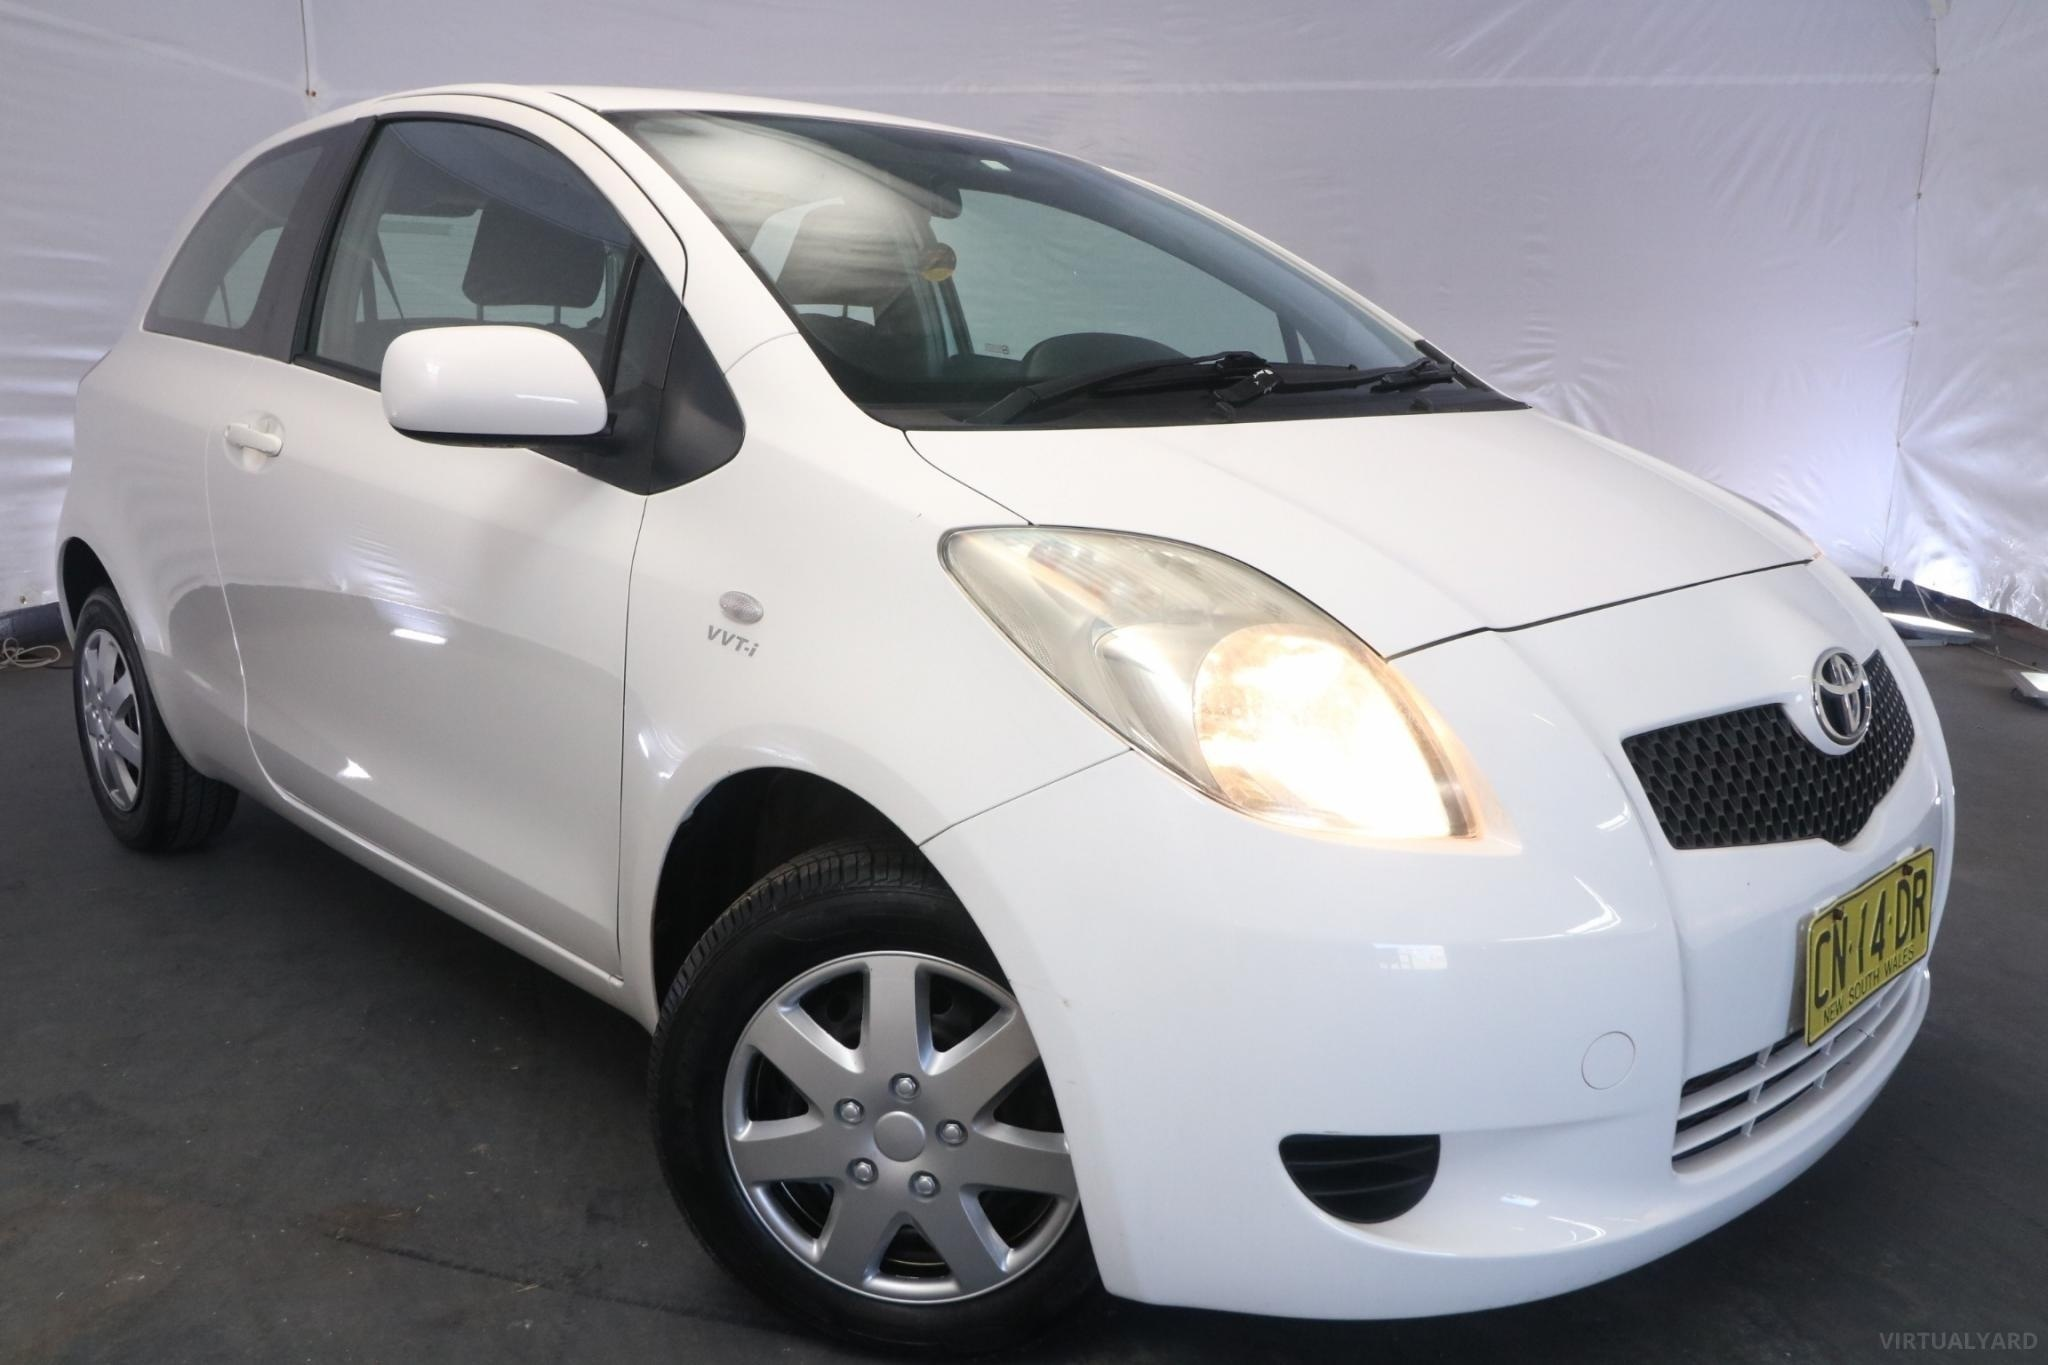 2008 Toyota Yaris YR NCP90R / 5 Speed Manual / Hatchback / 1.3L / 4 Cylinder / Petrol / 4x2 / 3 door / November release F6D08A